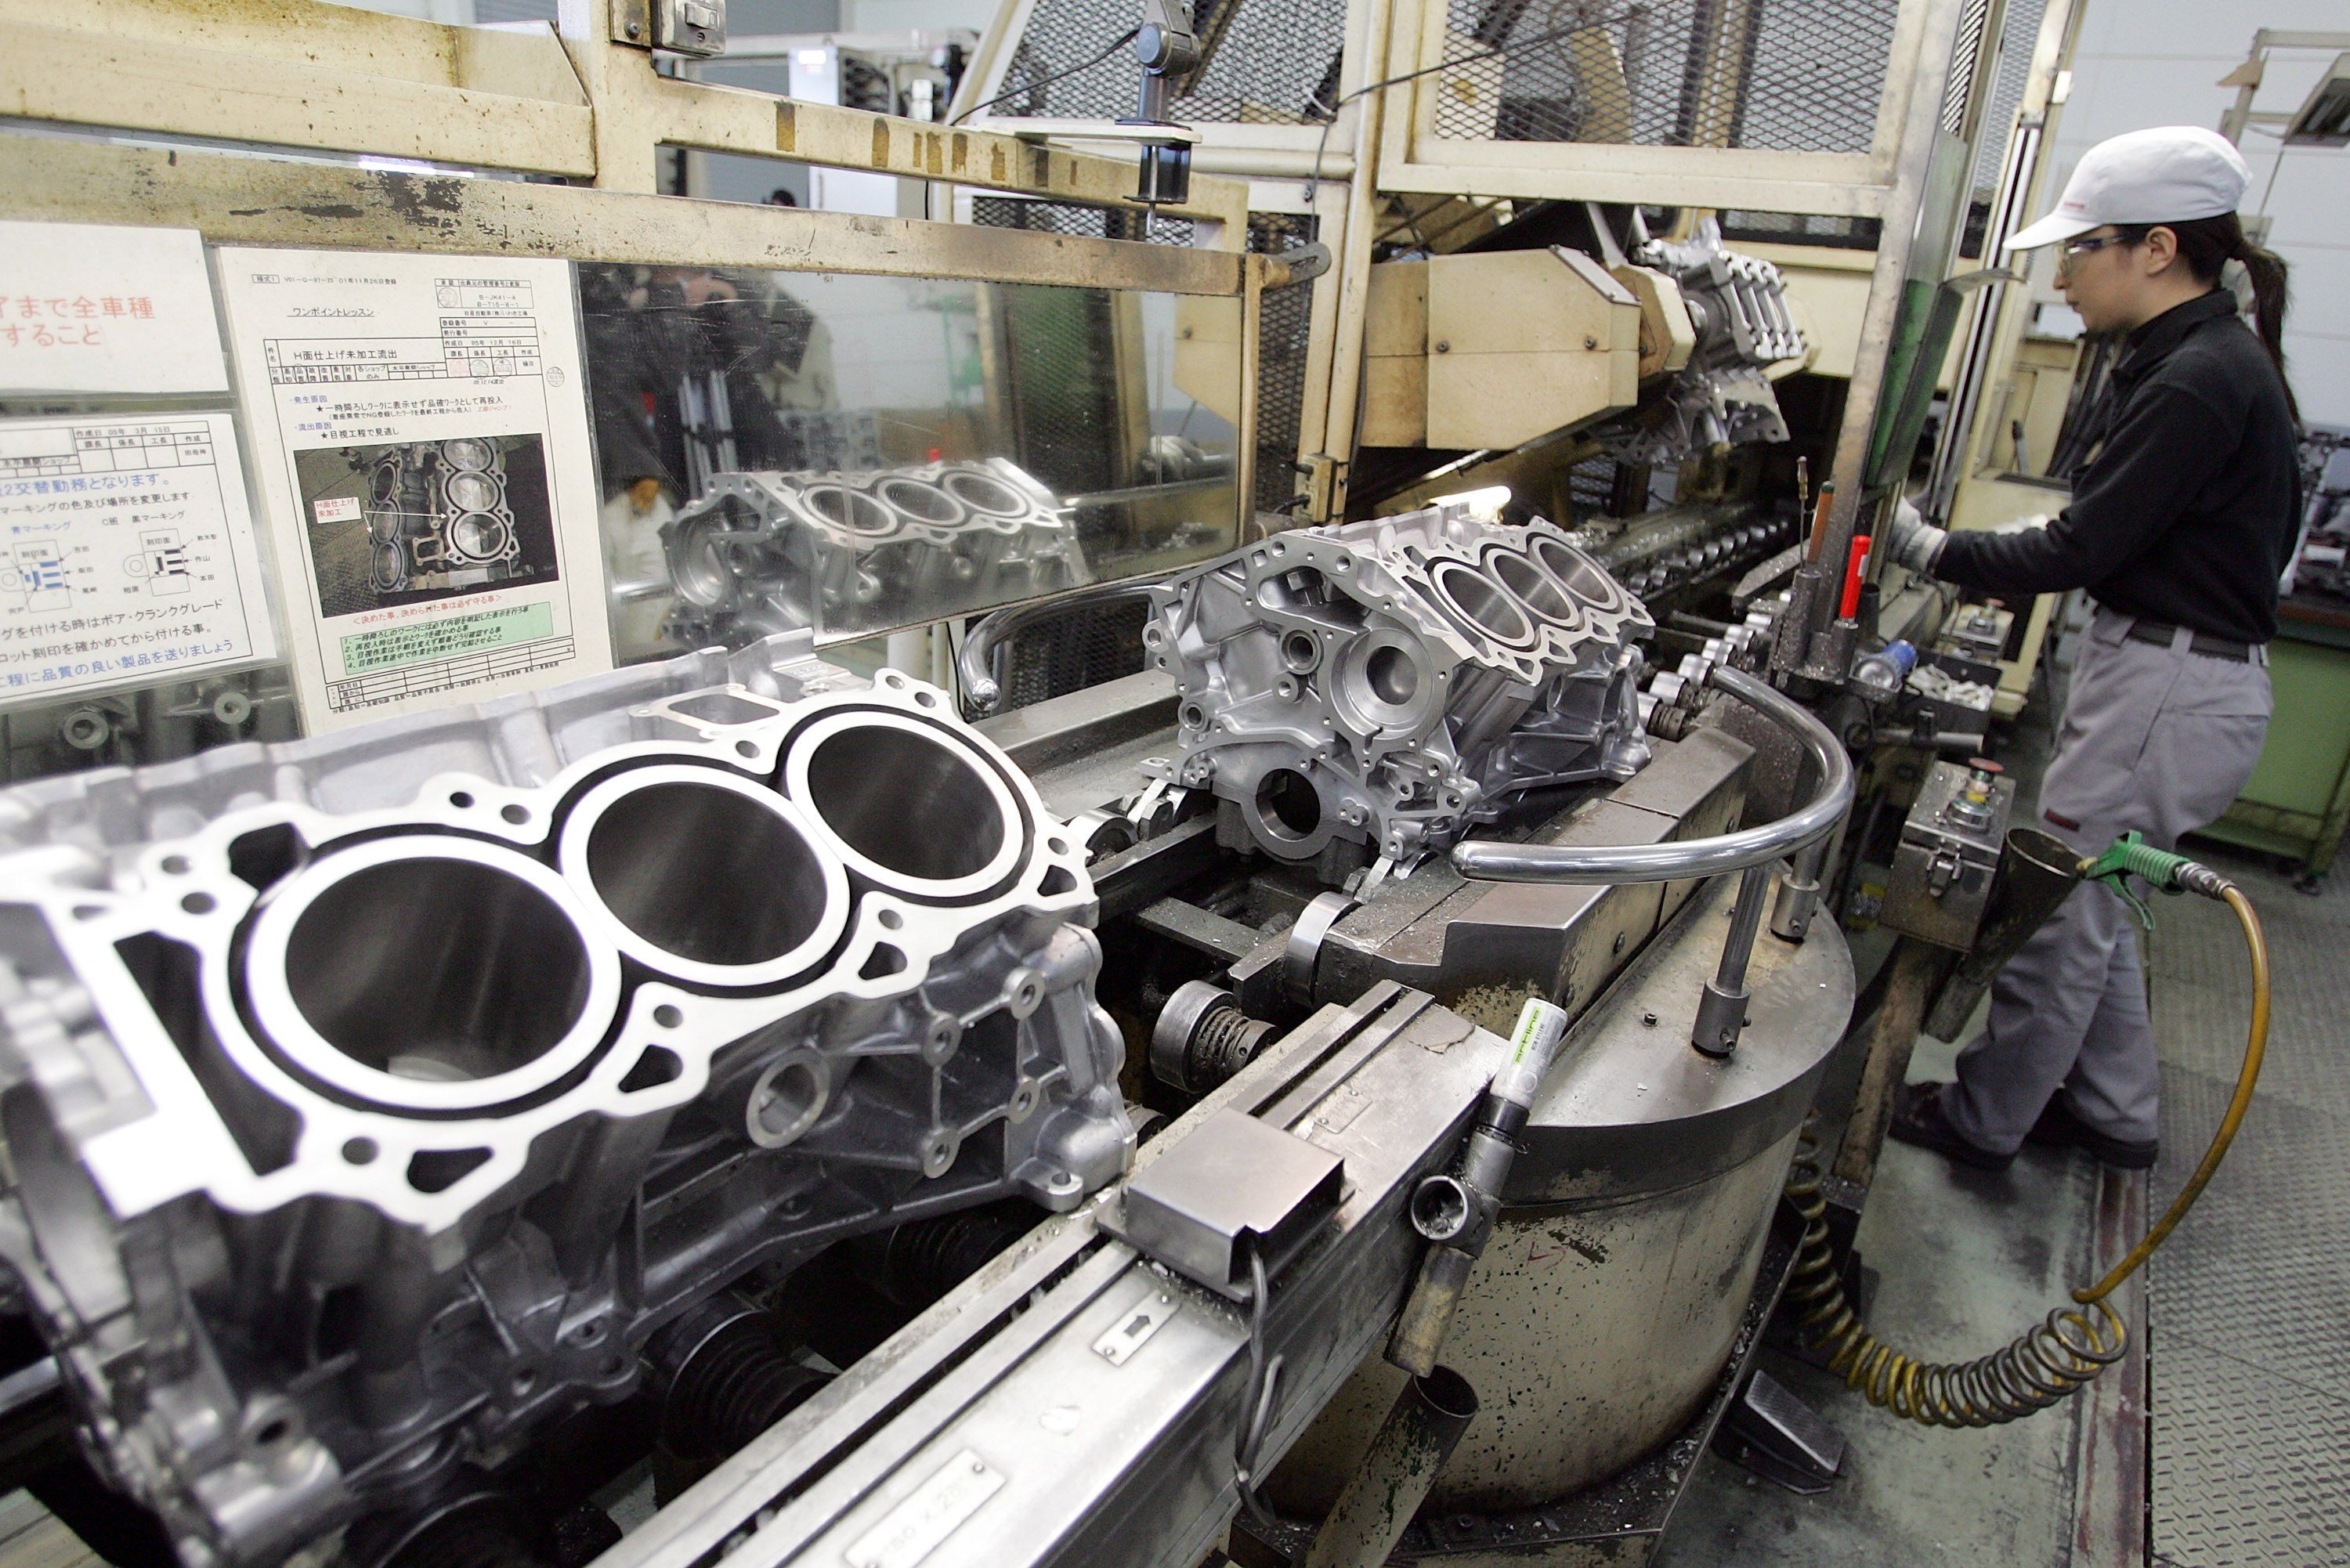 4 Engine Parts Pistons Cylinders Rods And A Crankshaft V16 Diagram Woman On Product Line Making